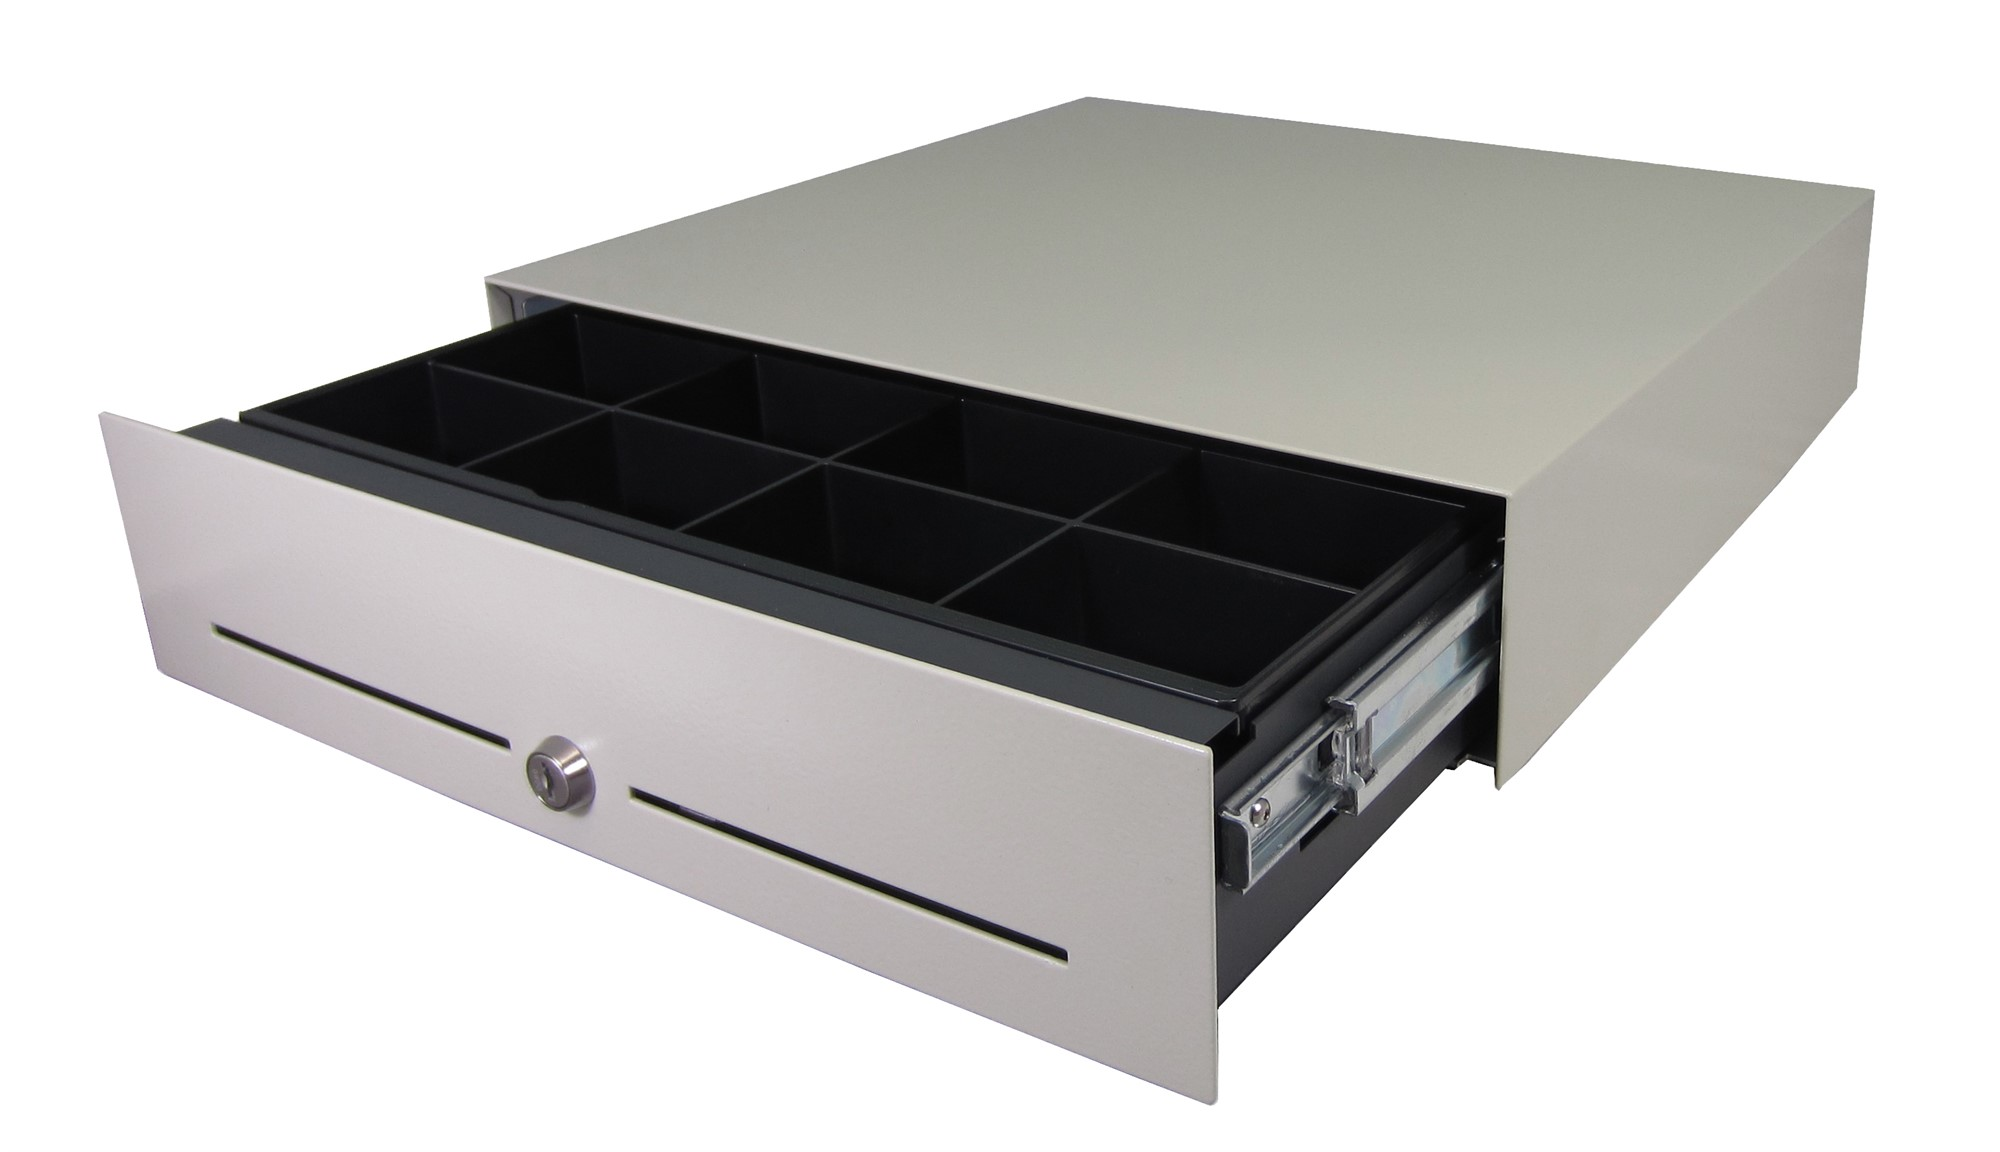 APG CASH DRAWER EB520-EG4541 E3000 METAL GREY